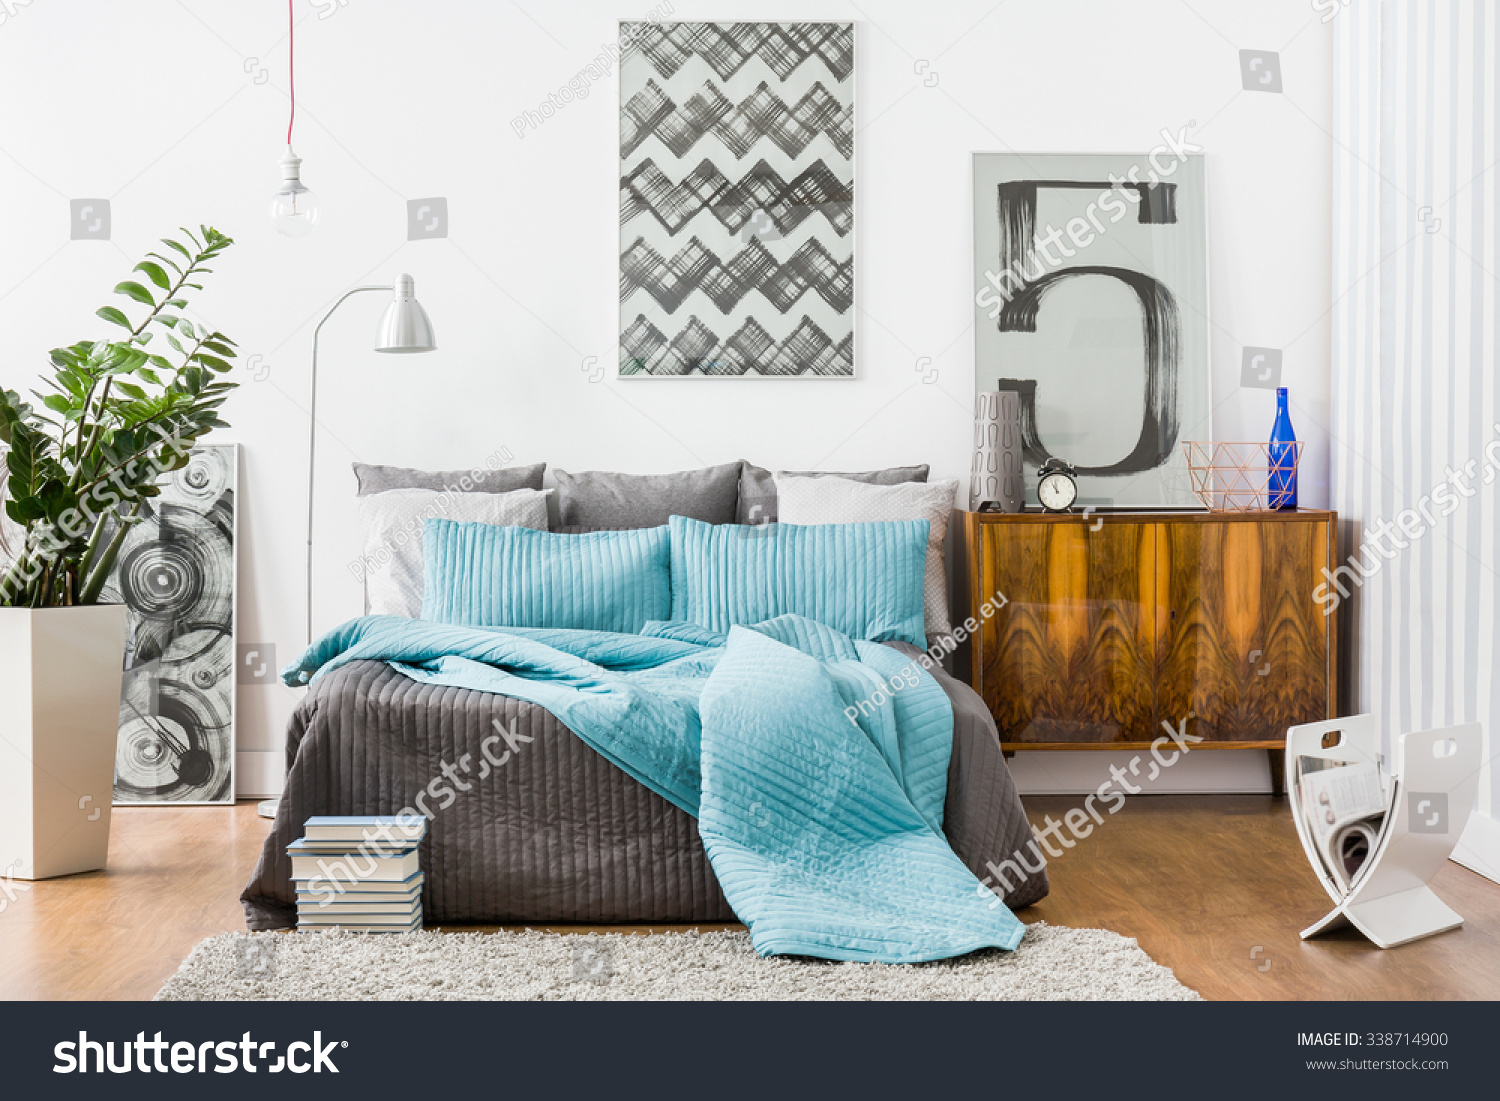 Image of spacious bedroom with modern stylish furniture. Image Spacious Bedroom Modern Stylish Furniture Stock Photo